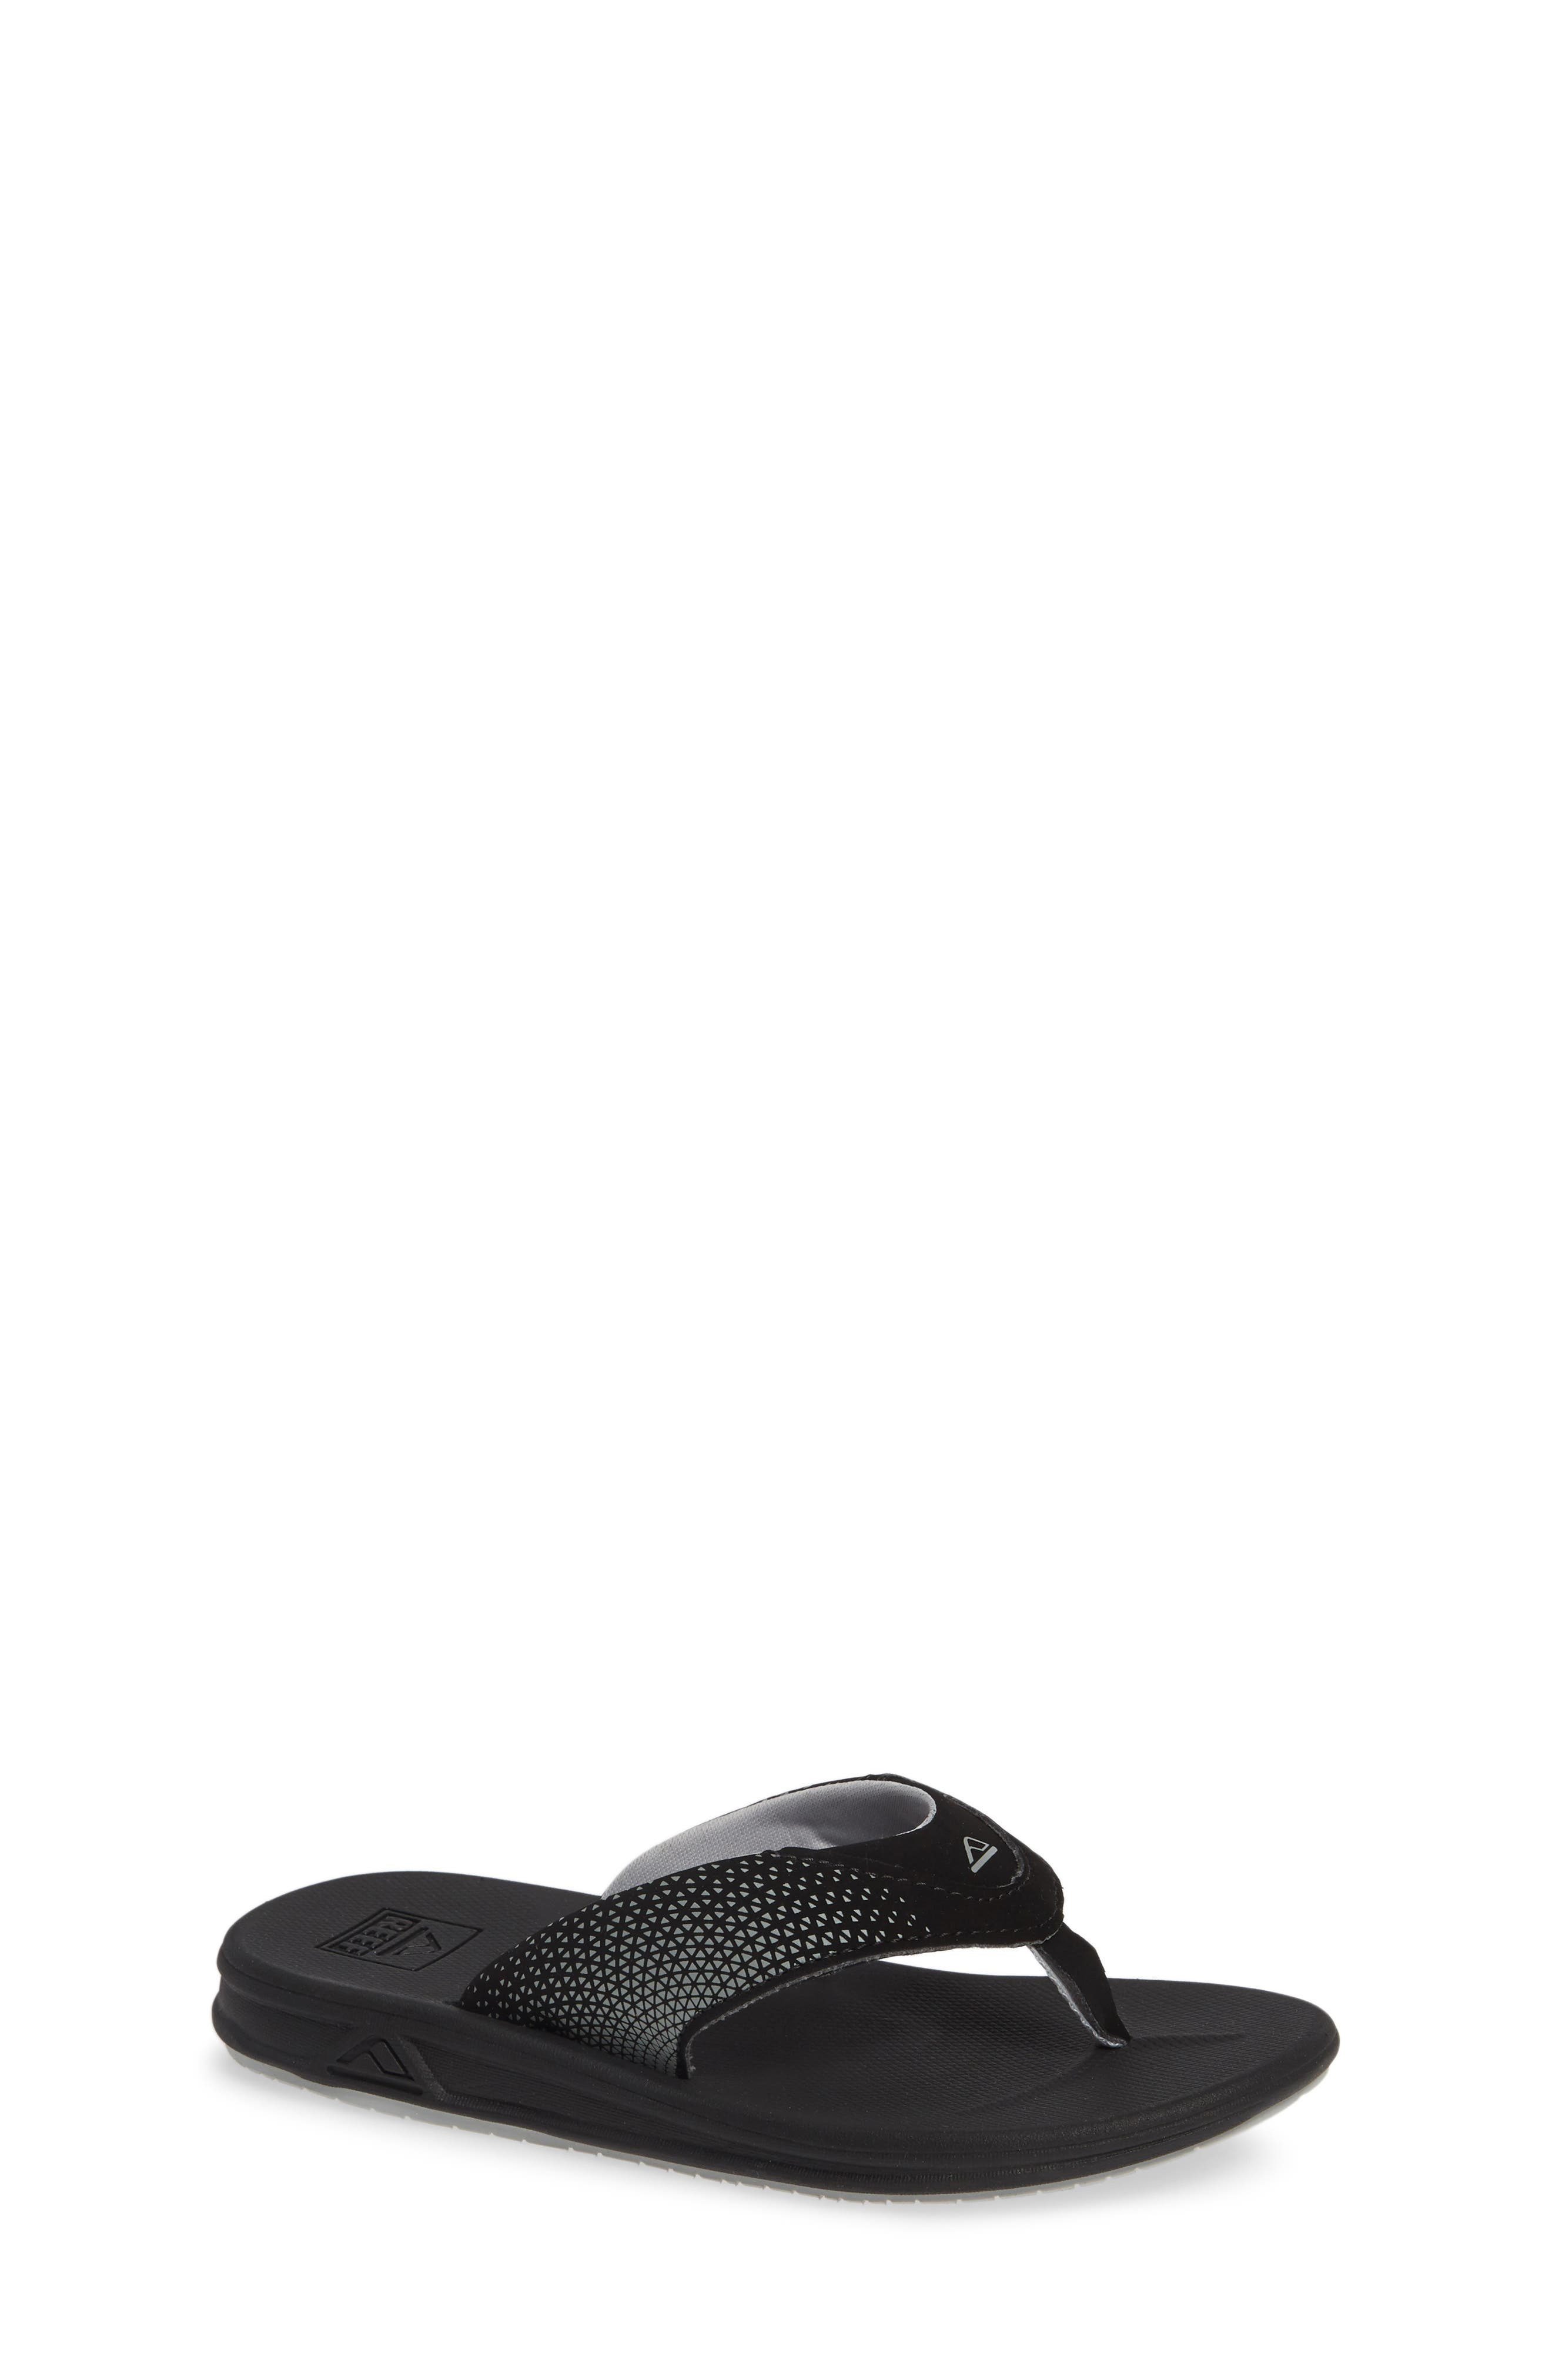 REEF, Grom Rover Water Friendly Sandal, Main thumbnail 1, color, BLACK